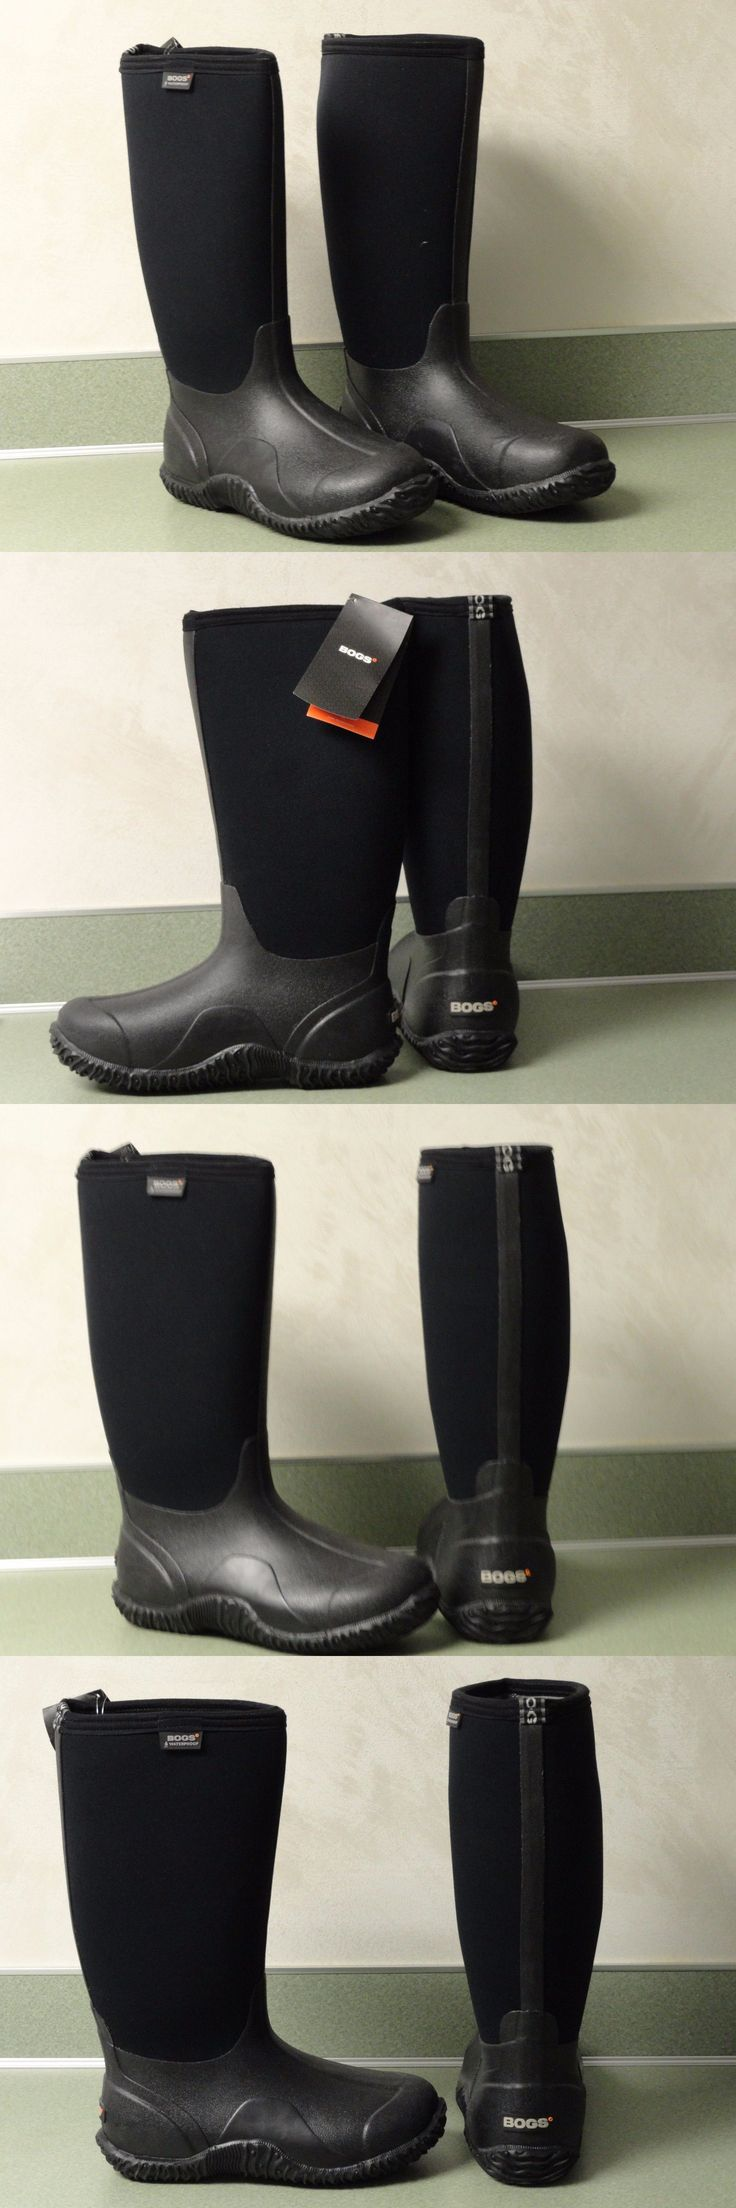 Women Boots: Womens Bogs Winter Boots Classic High Black Waterproof Insulated Size 8 BUY IT NOW ONLY: $89.99